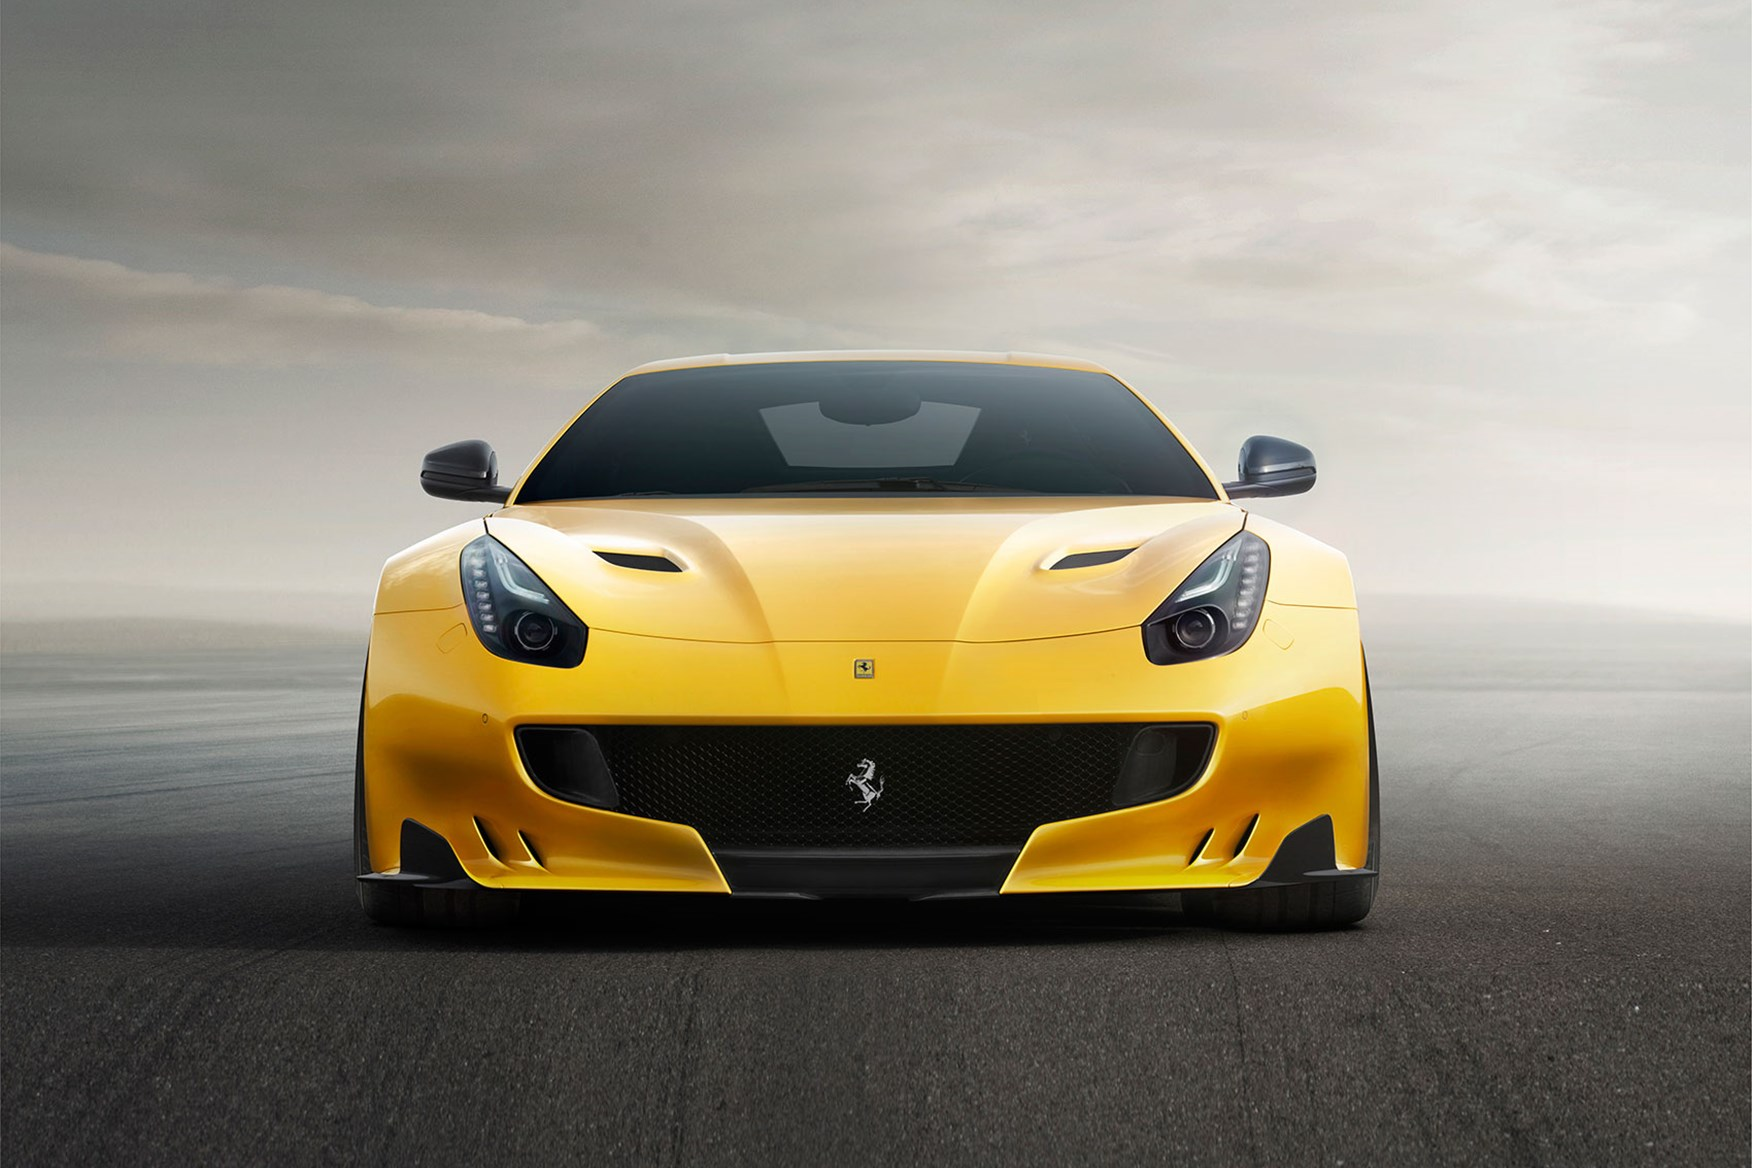 Introducing The New Ferrari F12 Tdf Not A Typo Another Name For A Gto Car Magazine